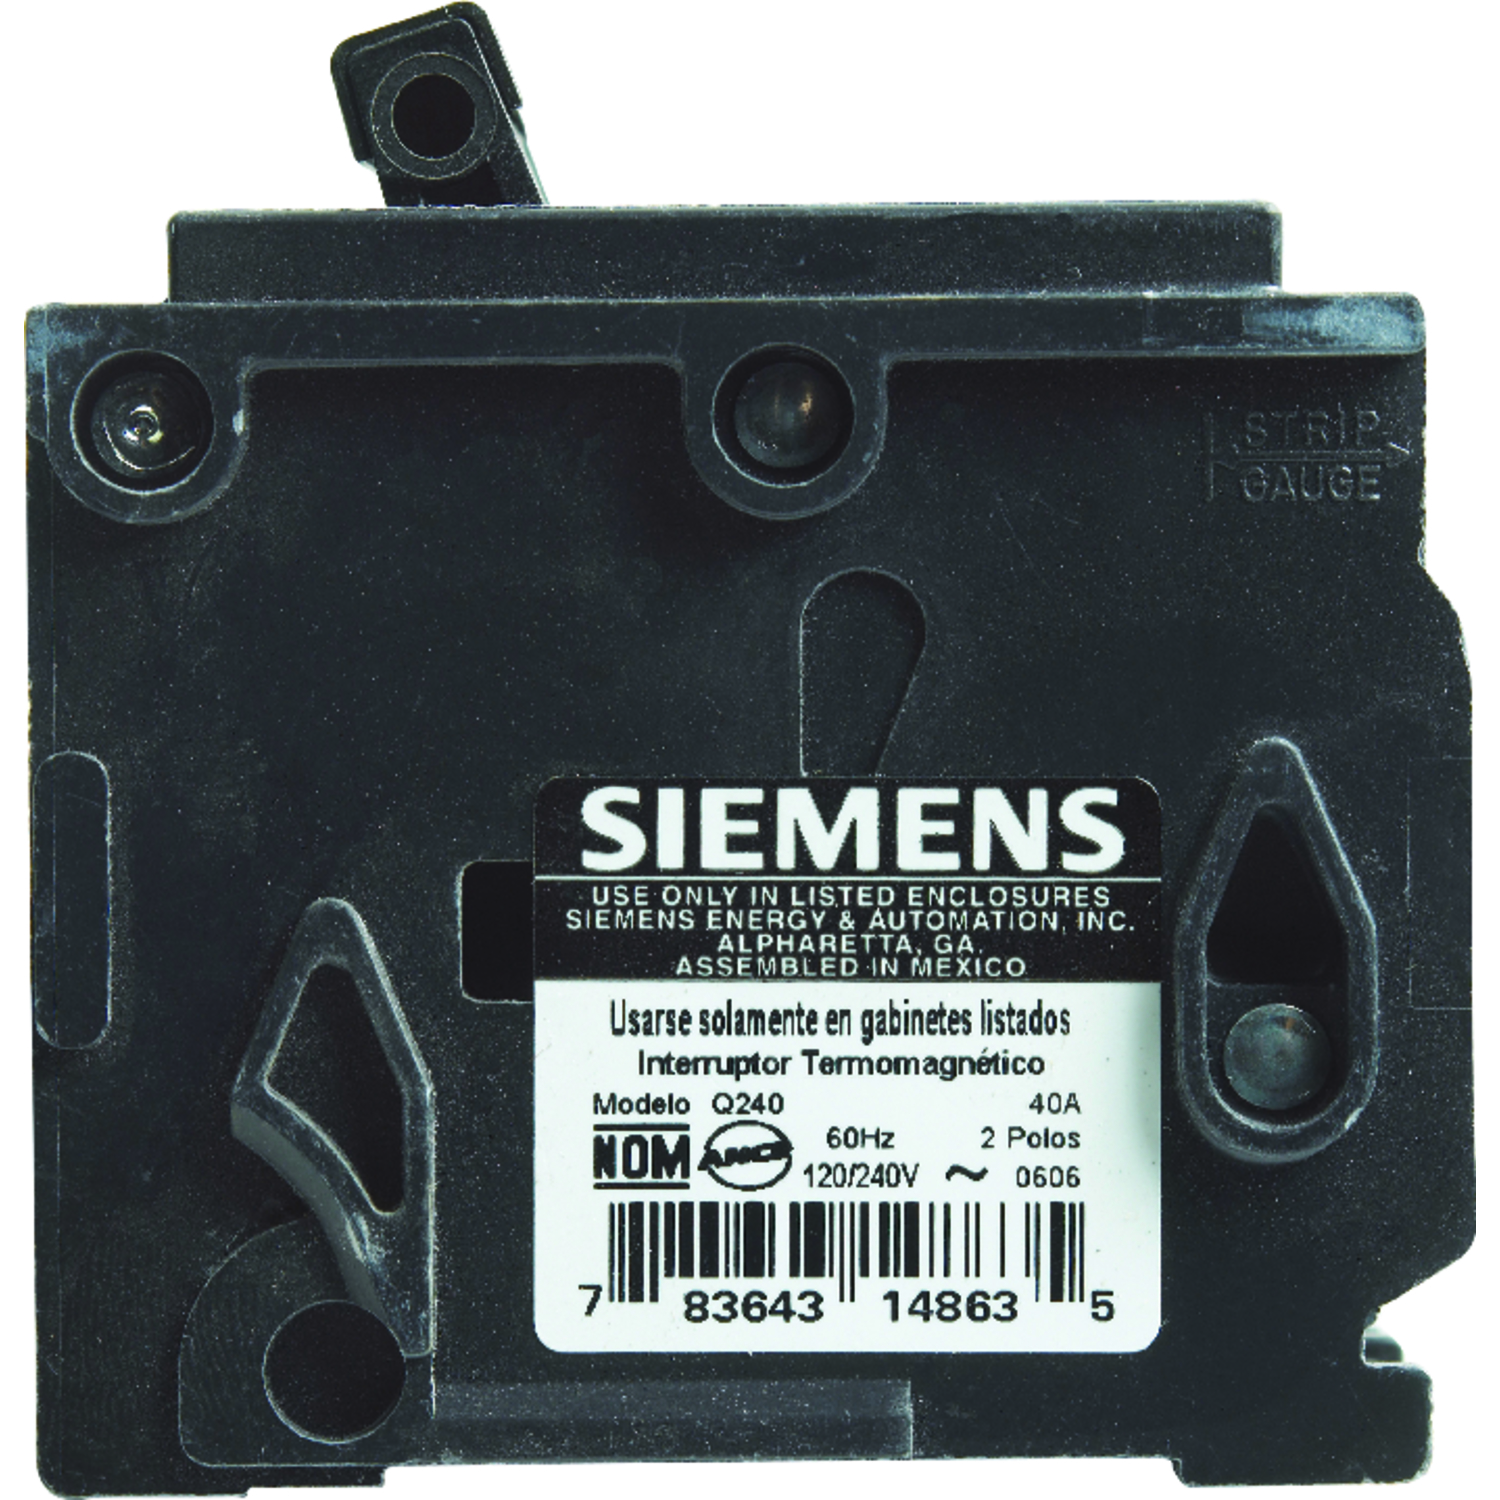 Siemens Homeline 40 Amps Double Pole 2 Circuit Breaker Ace Hardware House Fuse Box 10000